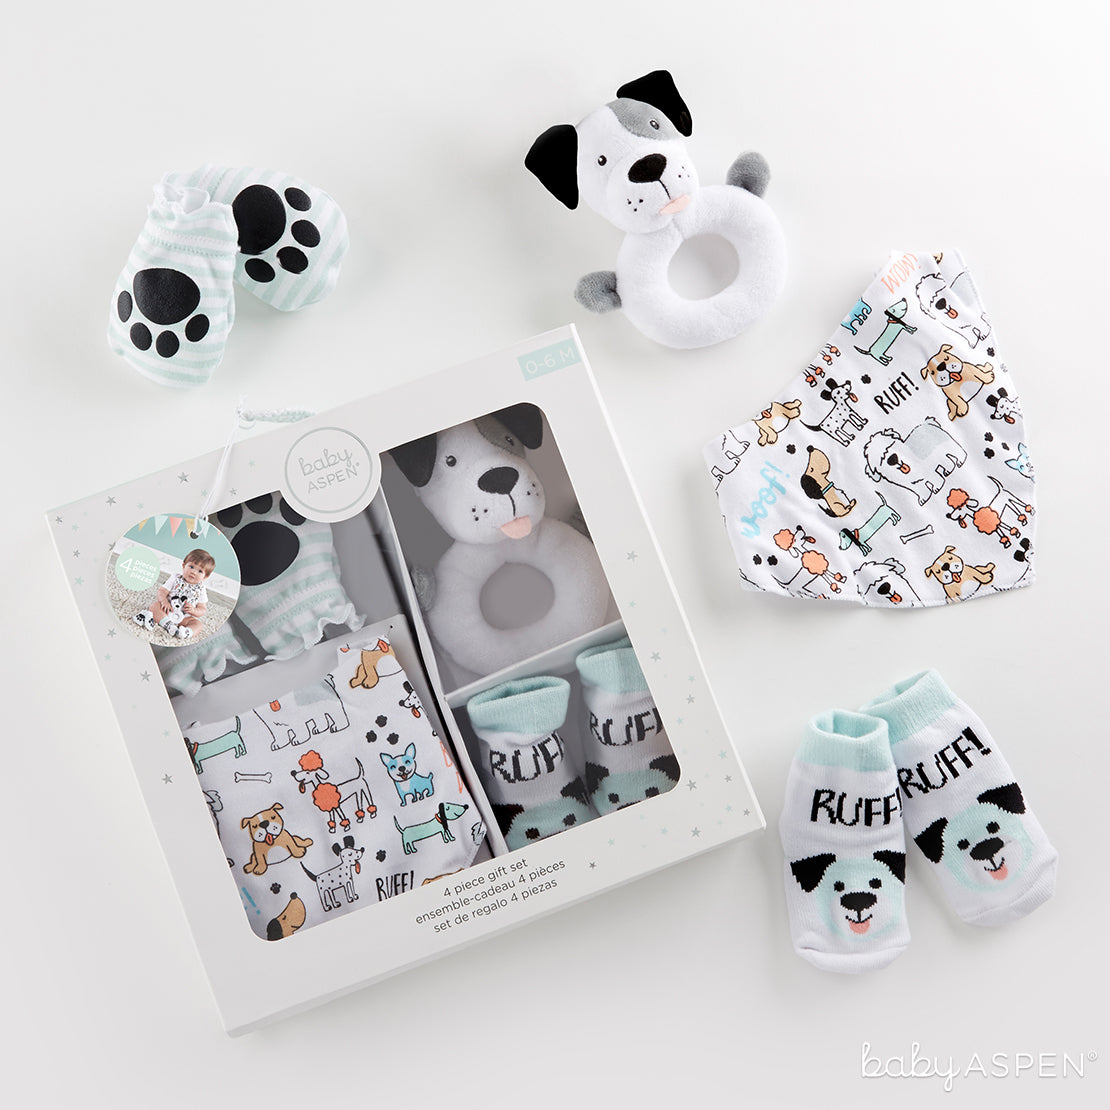 Puppy Love 4-Piece Gift Set | 7 Excellent Easter Gifts for Your Little Chick | Baby Aspen